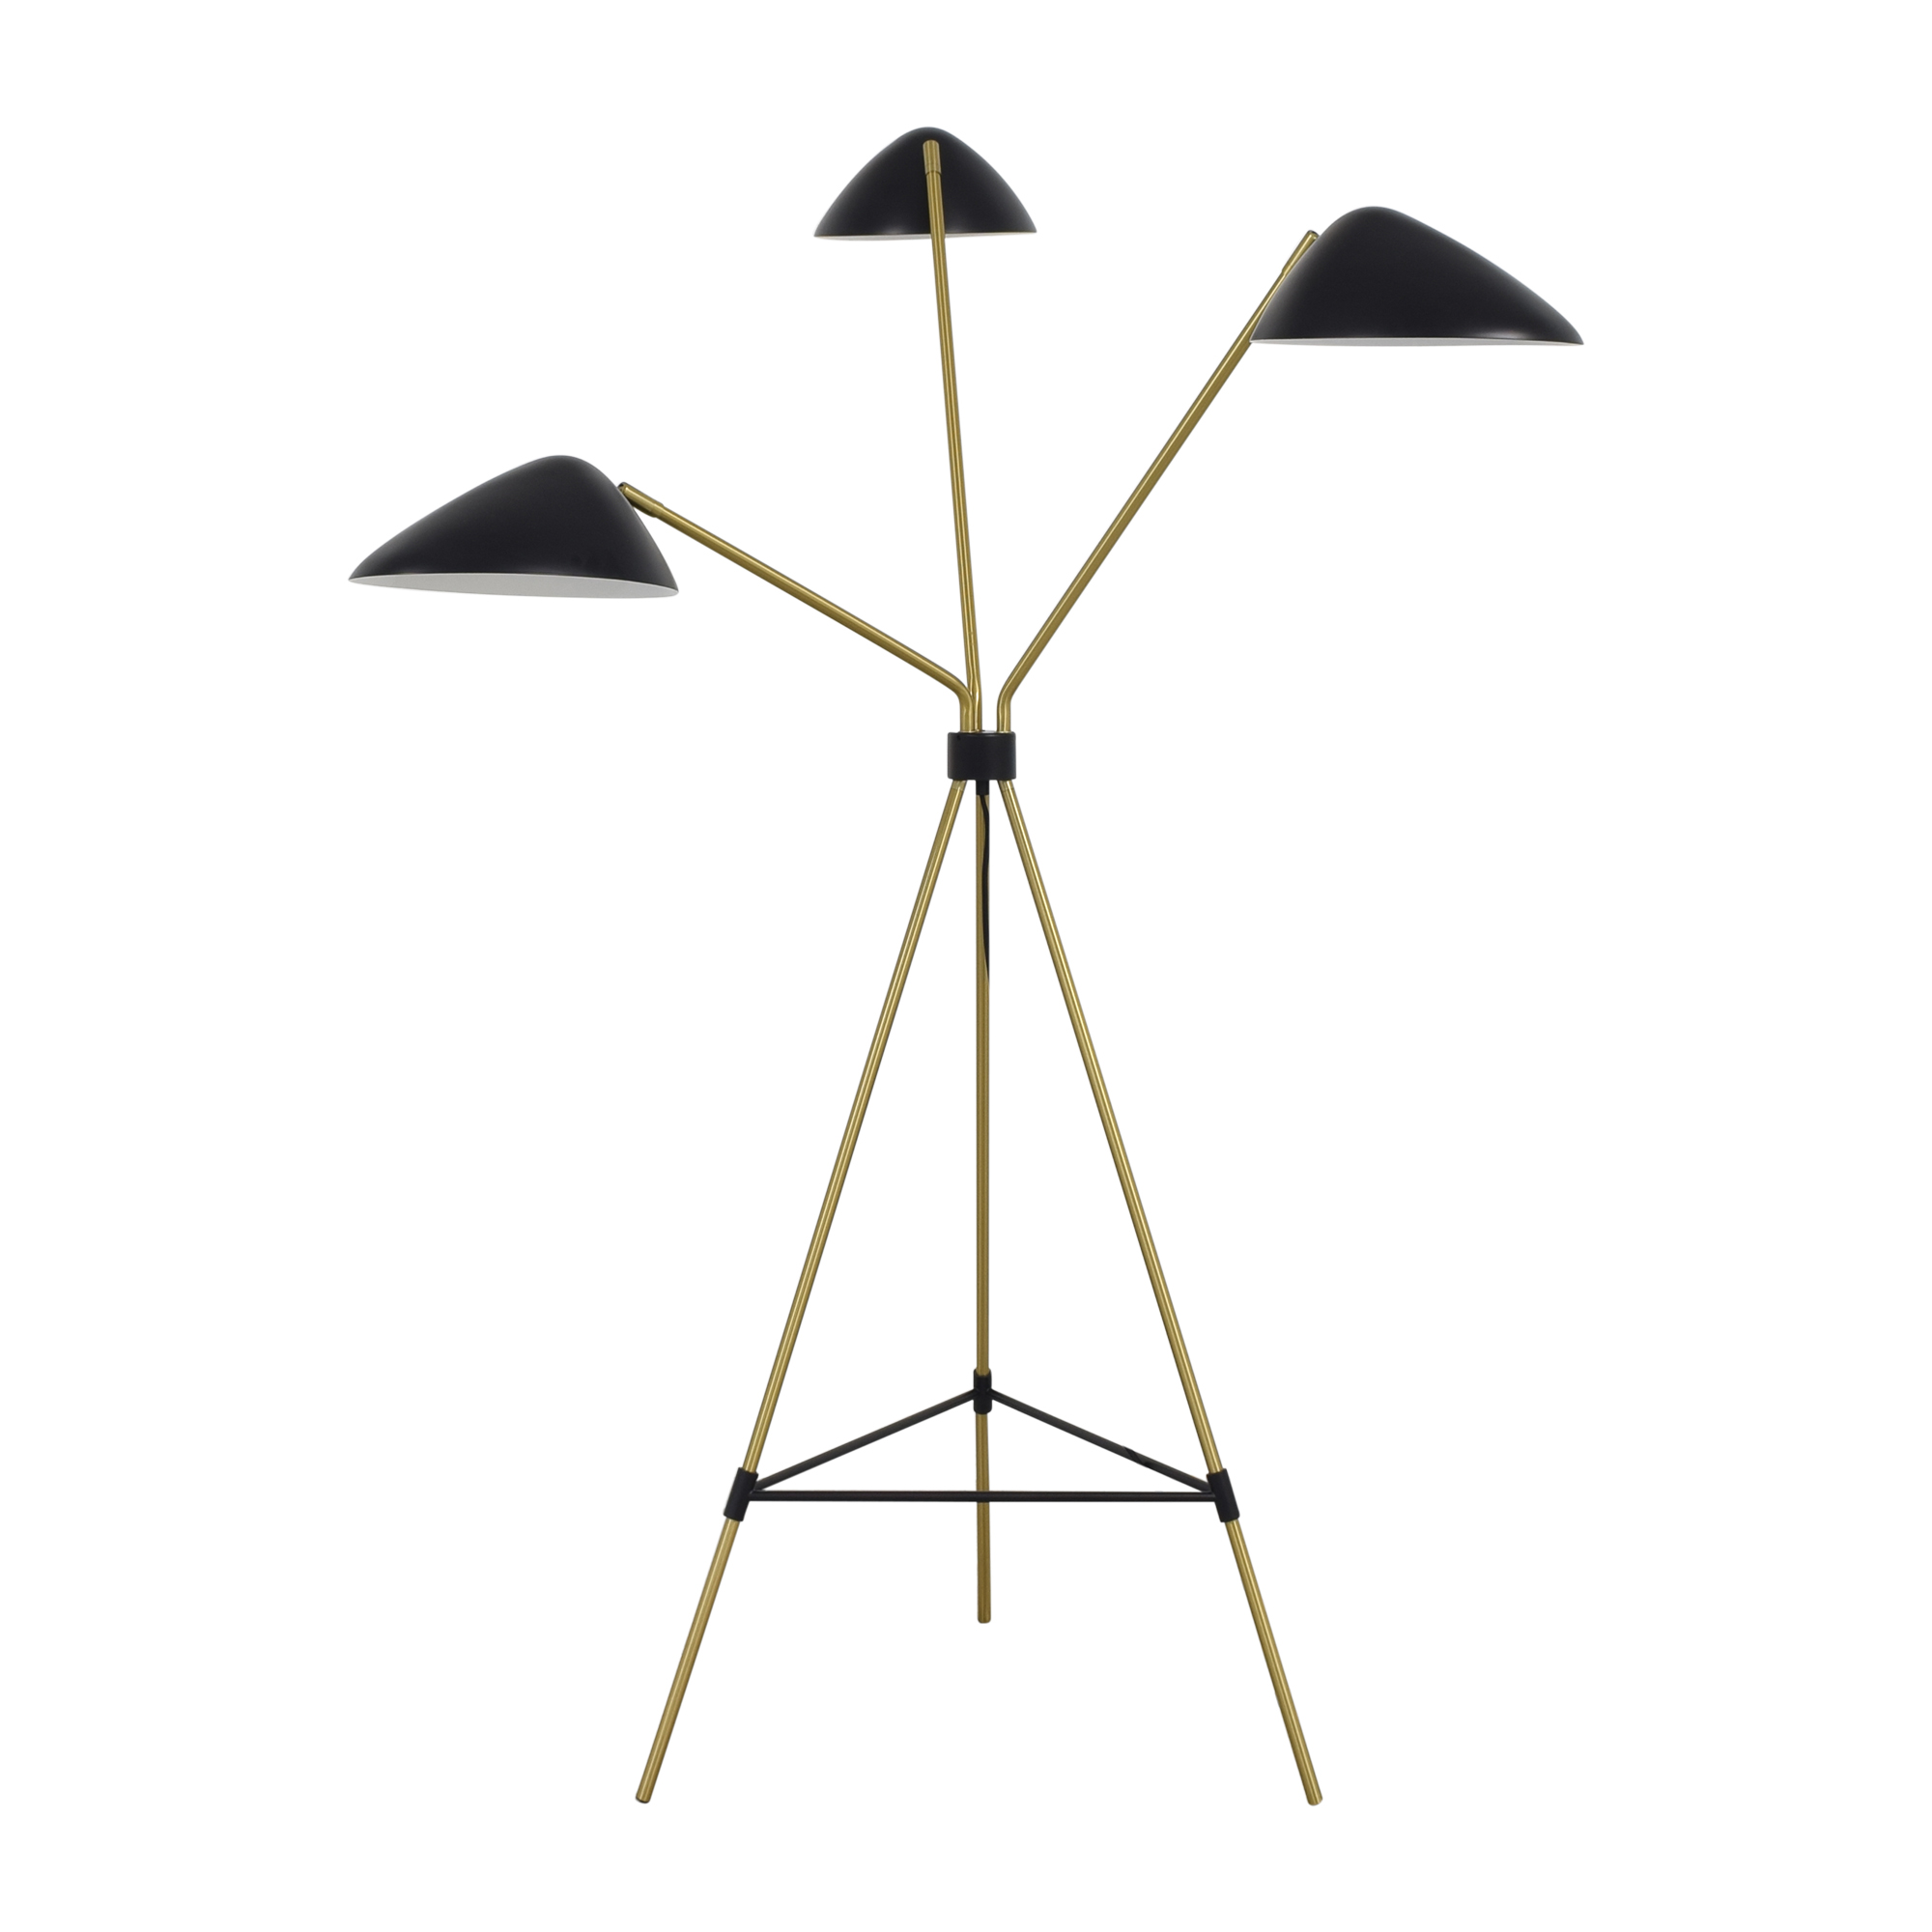 West Elm West Elm Curvilinear Mid-Century Floor Lamp black and gold